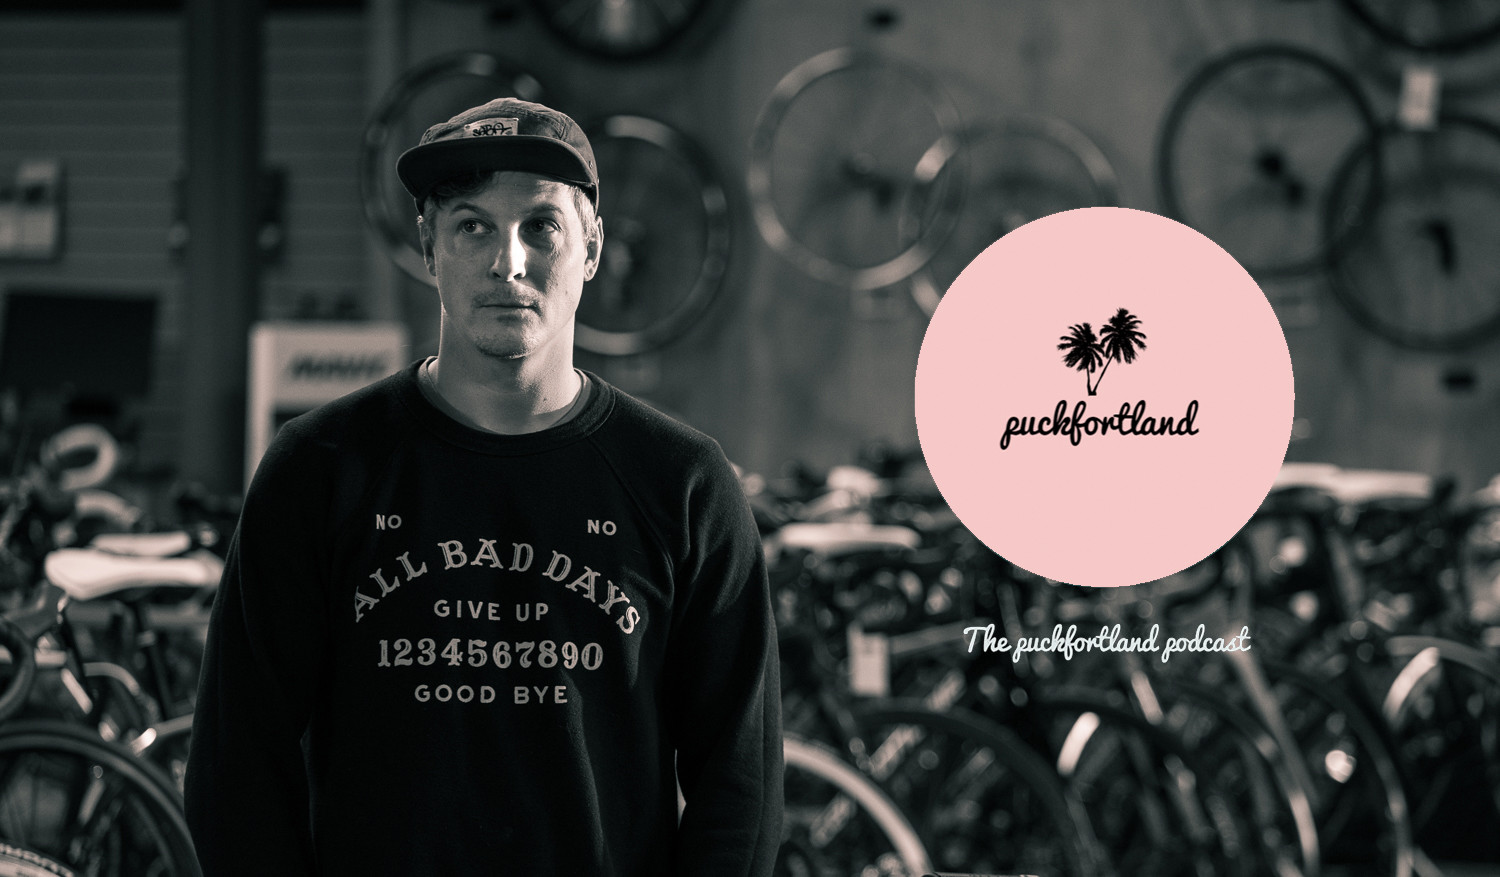 Portland Bike People: Ed Rogers and the Puckfortland Podcast